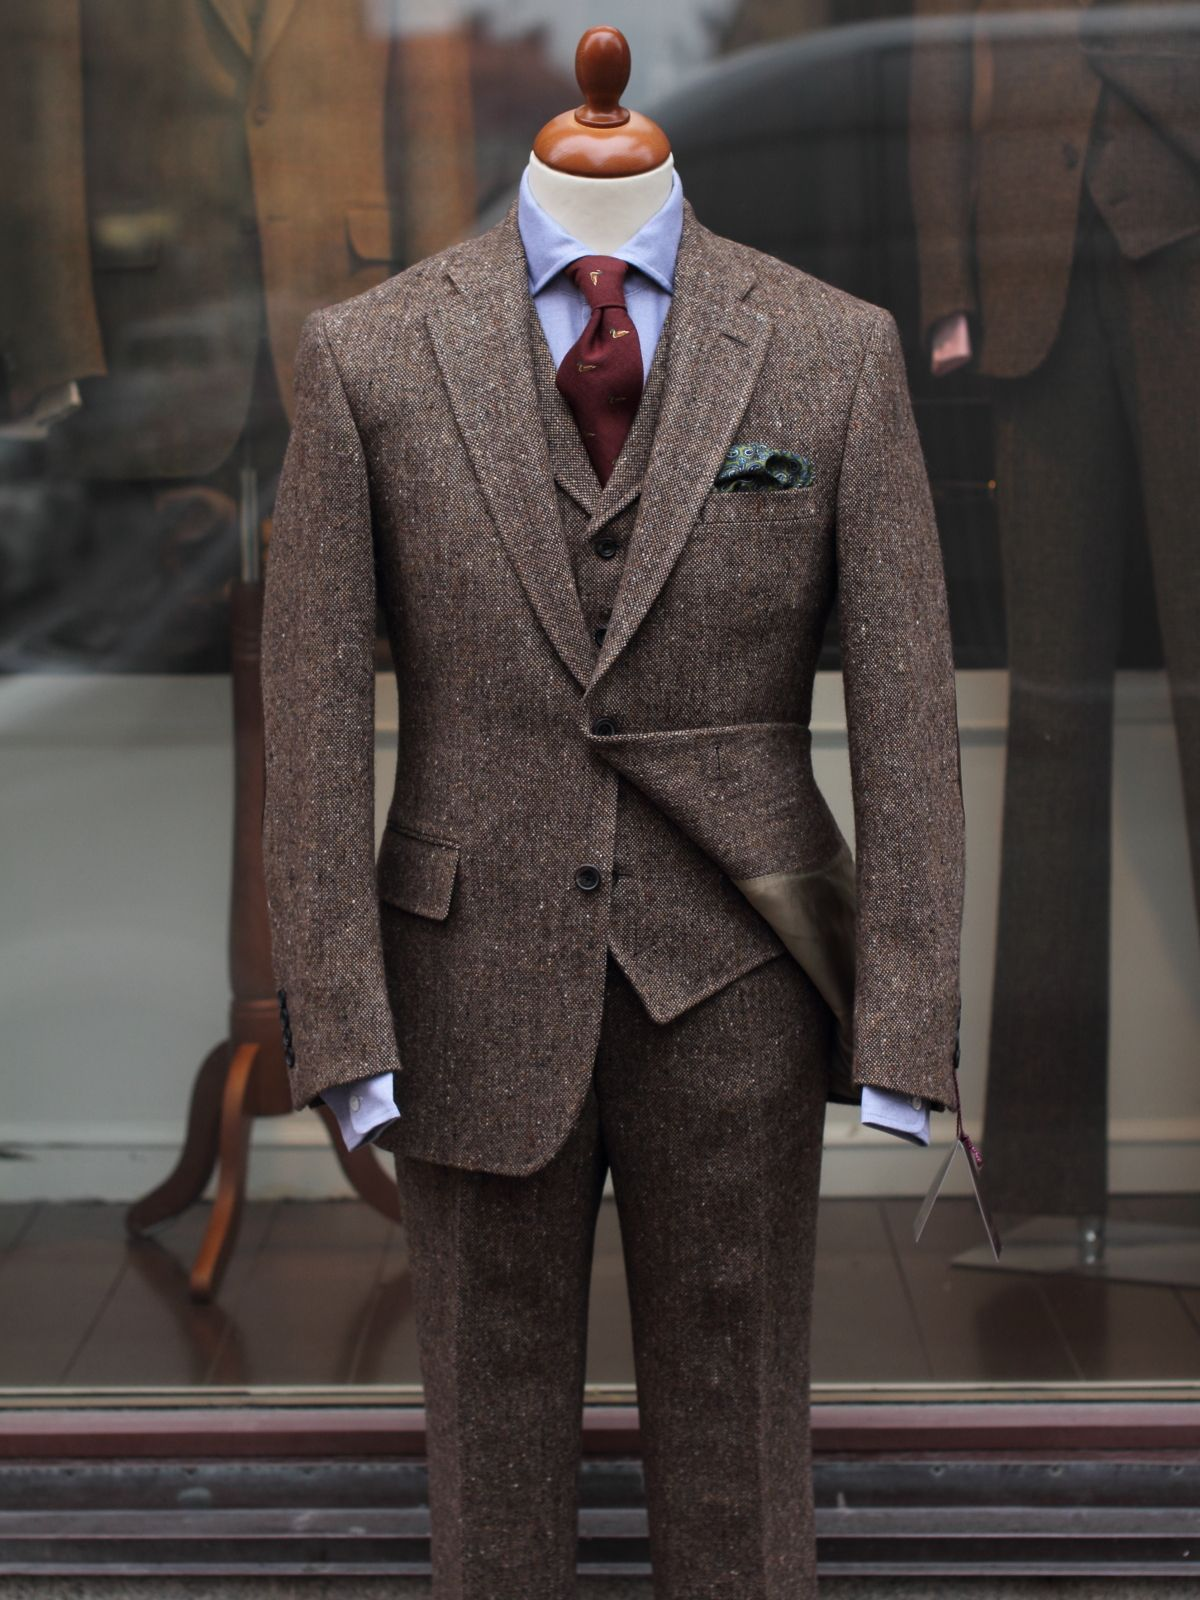 This Donegal Tweed Three Piece Suit Is Brown With A Subtle